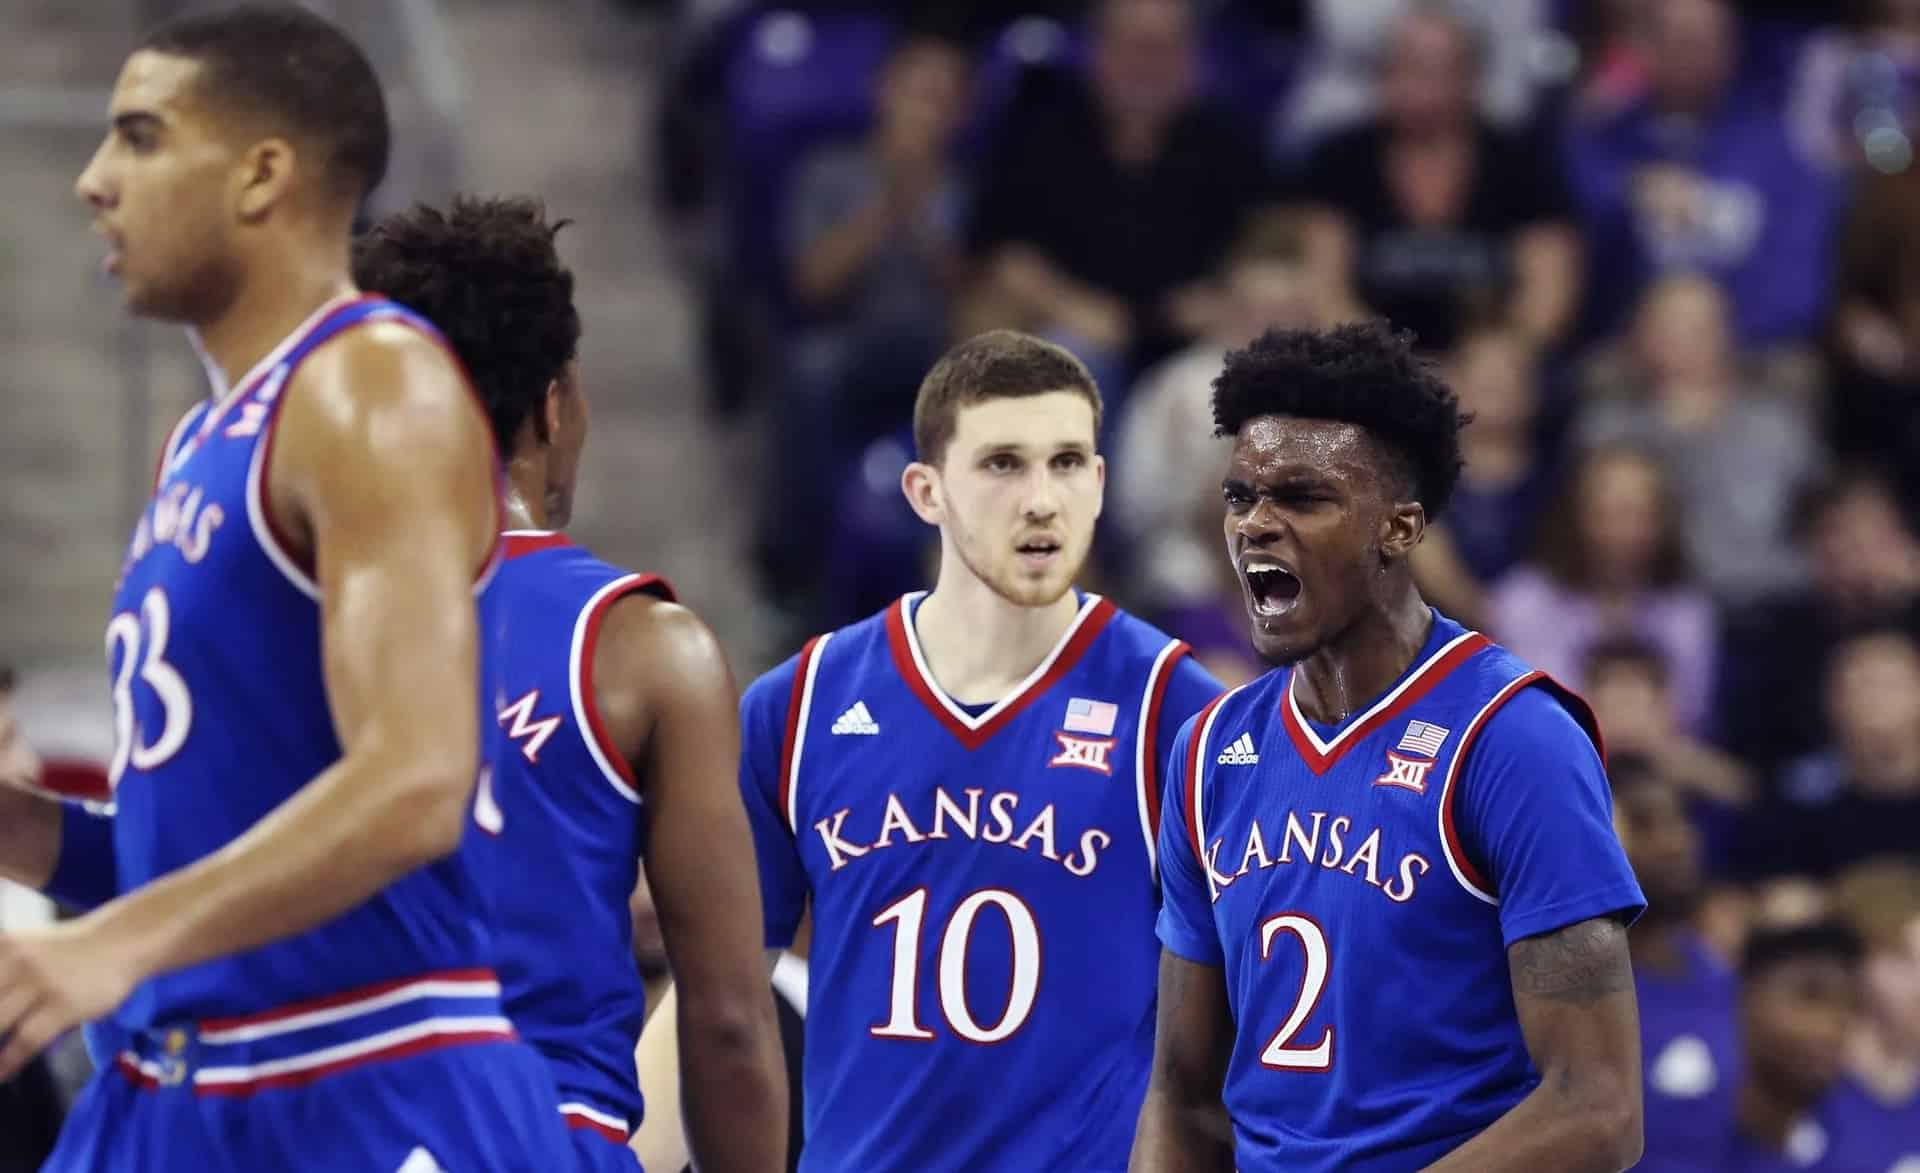 Ncaa basketball - Kansas Jayhawks